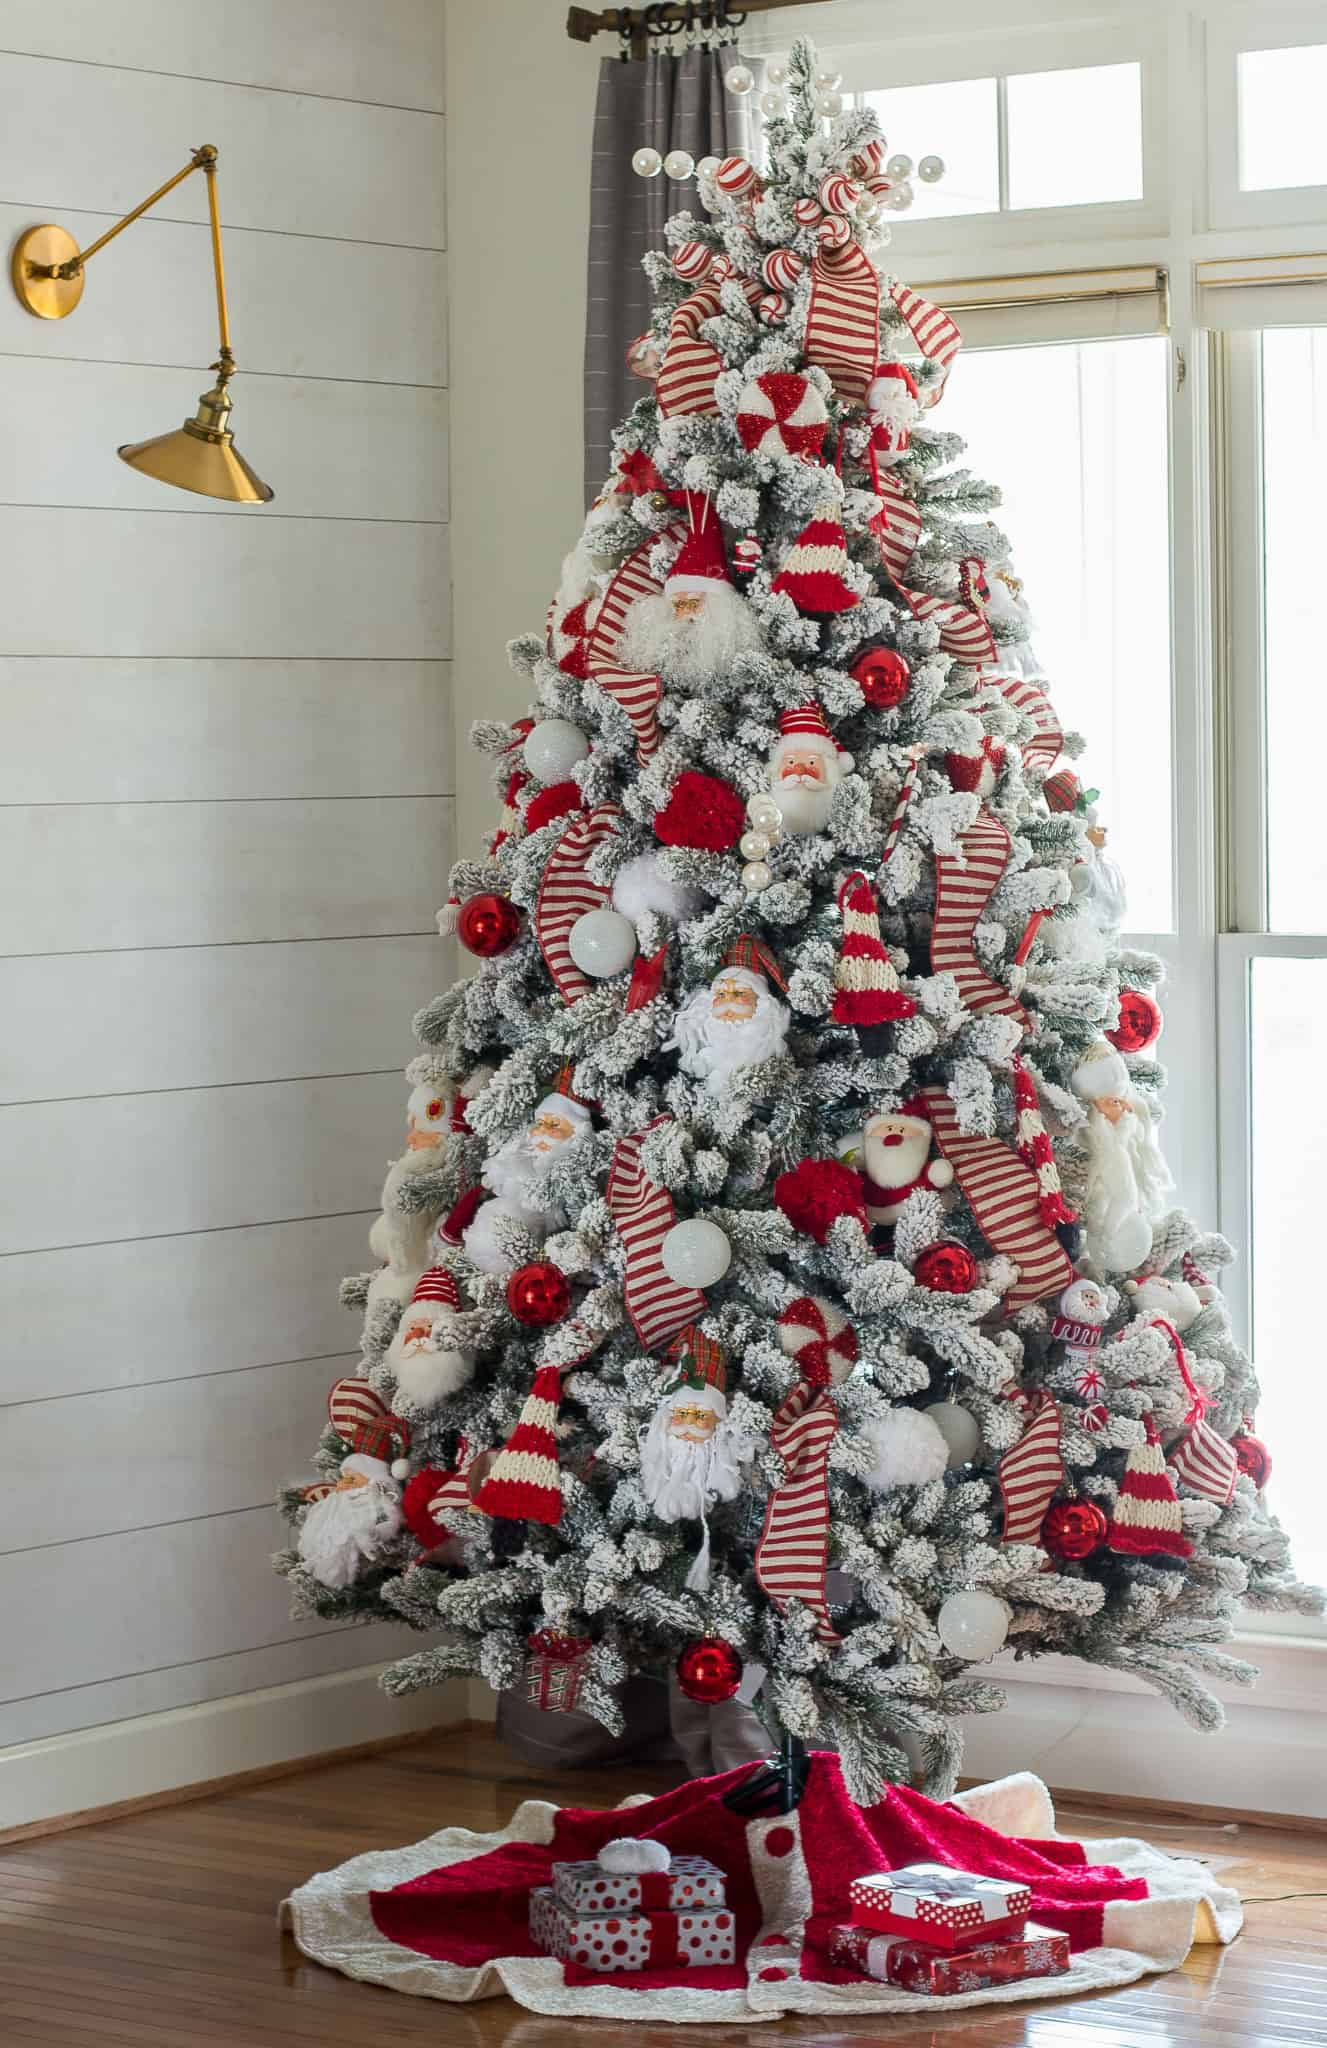 The Best Theme Christmas Tree Ideas To Take Your Decor Up A Notch This Holiday Apartment Therapy